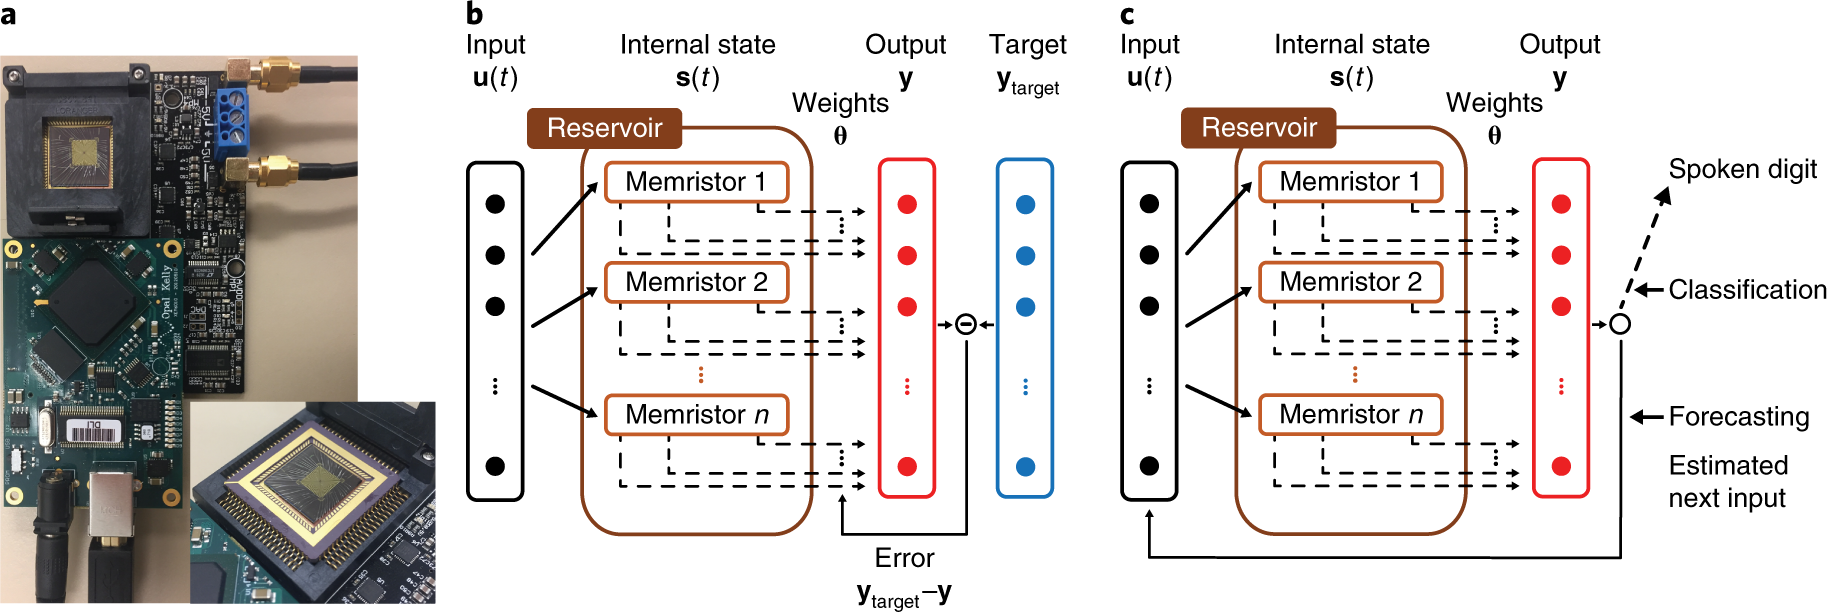 Temporal data classification and forecasting using a memristor-based r